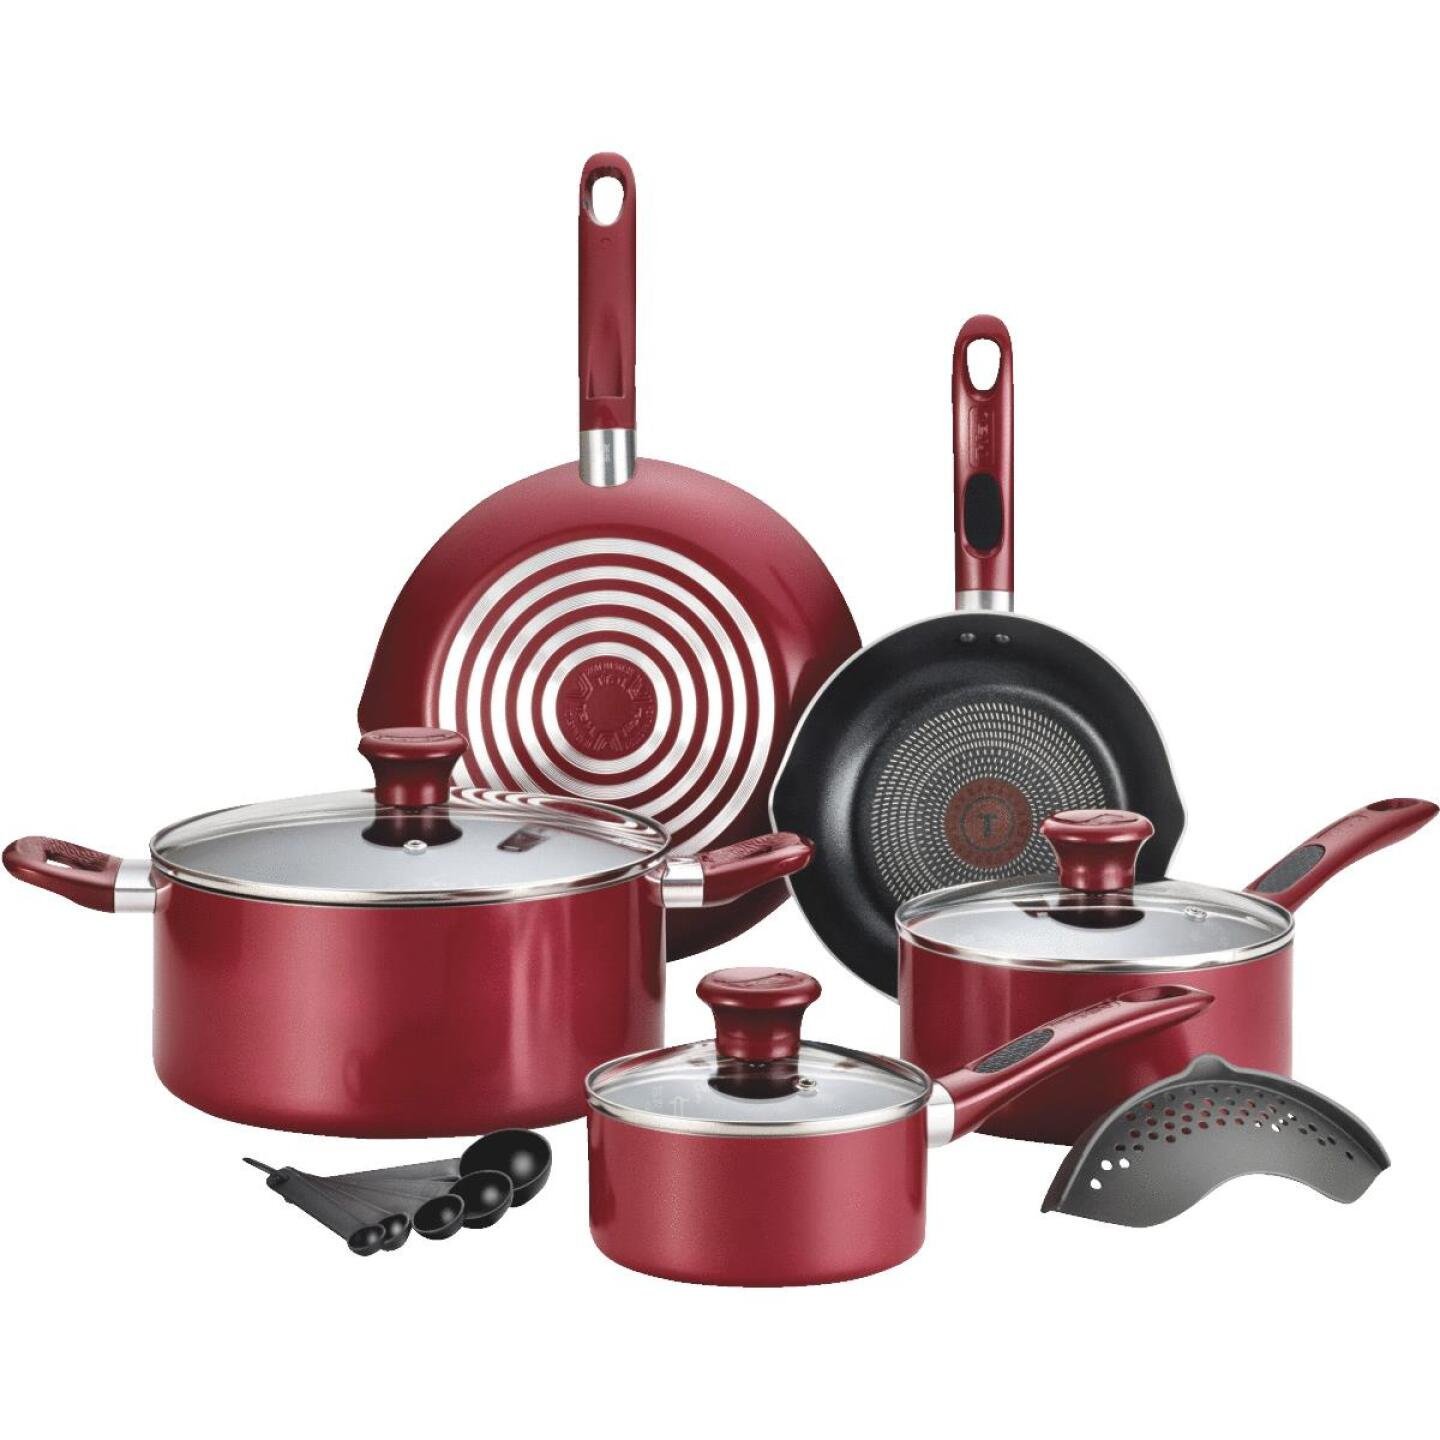 T-Fal Thermo-Spot Non-Stick Aluminum Cookware Set (14-piece) Image 1